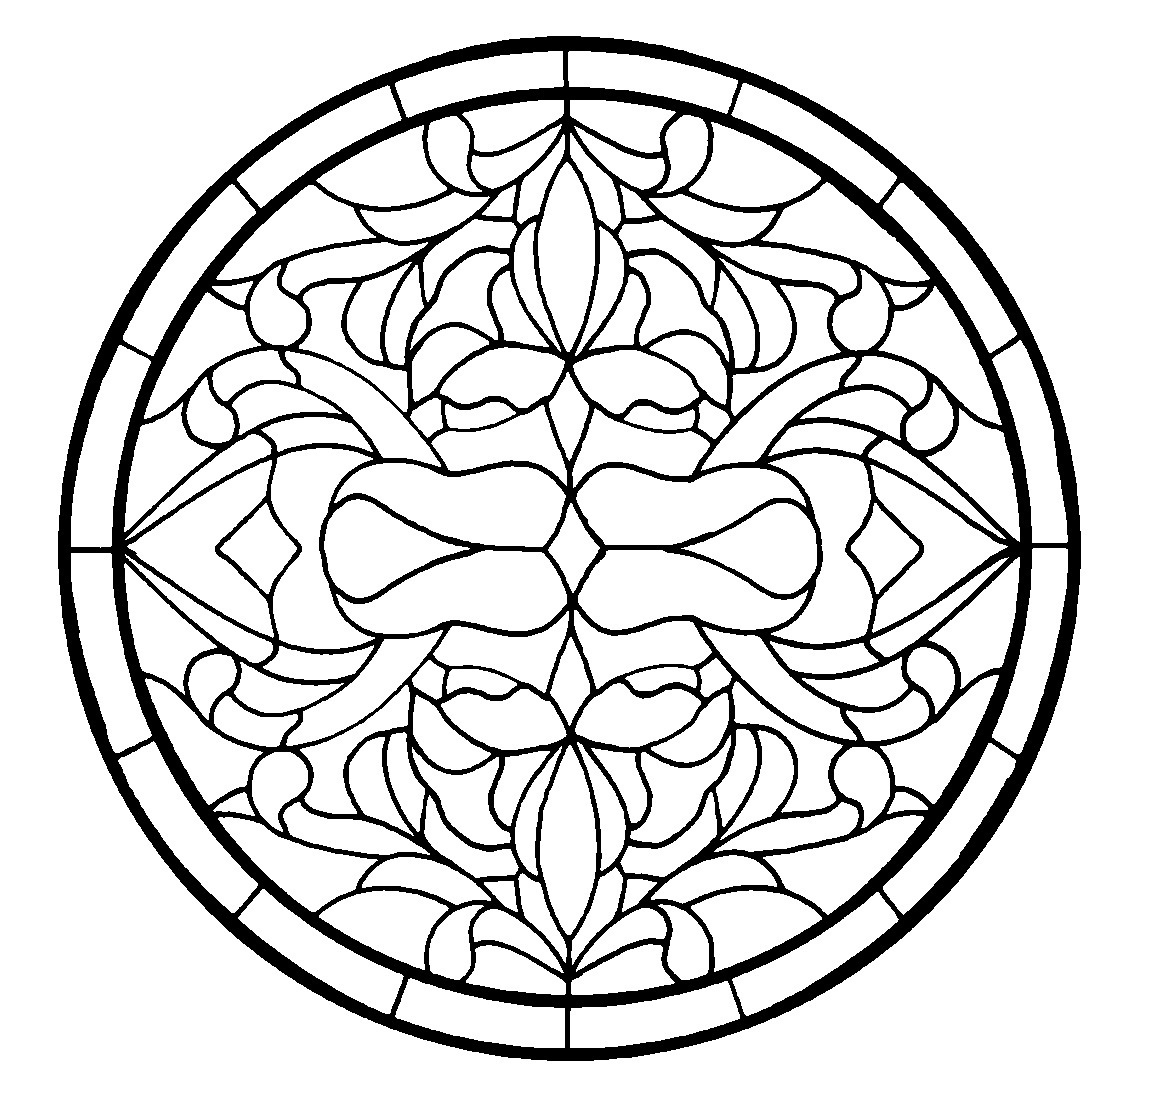 45 Simple Stained Glass Patterns   Guide Patterns - Free Printable Religious Stained Glass Patterns